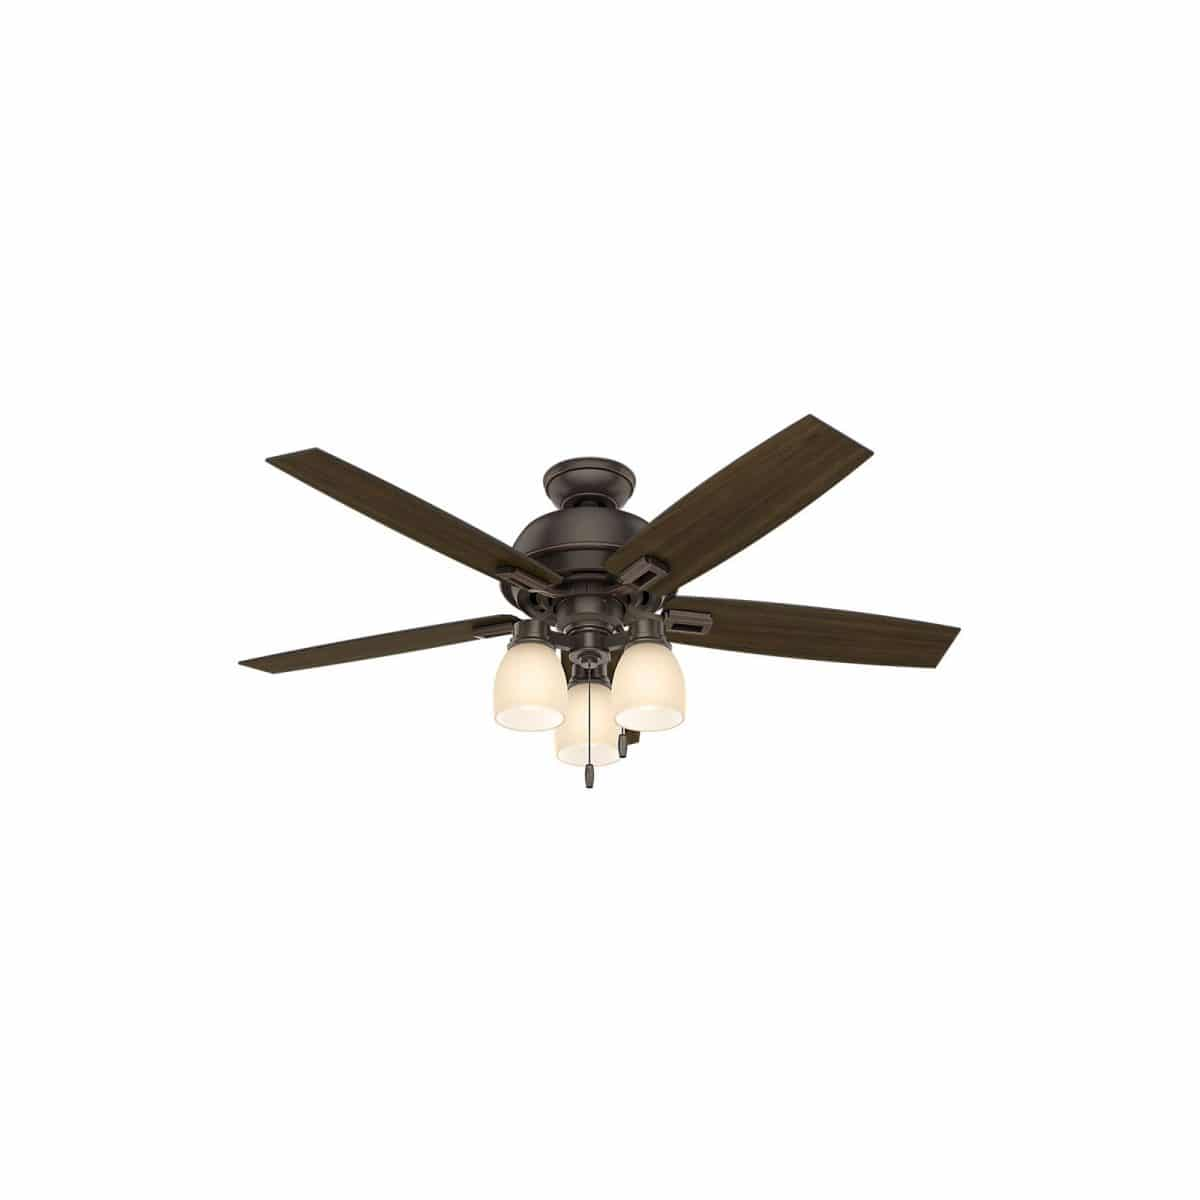 "Affordable farmhouse ceiling fan 44"" Donegan 5 blade ceiling fan"